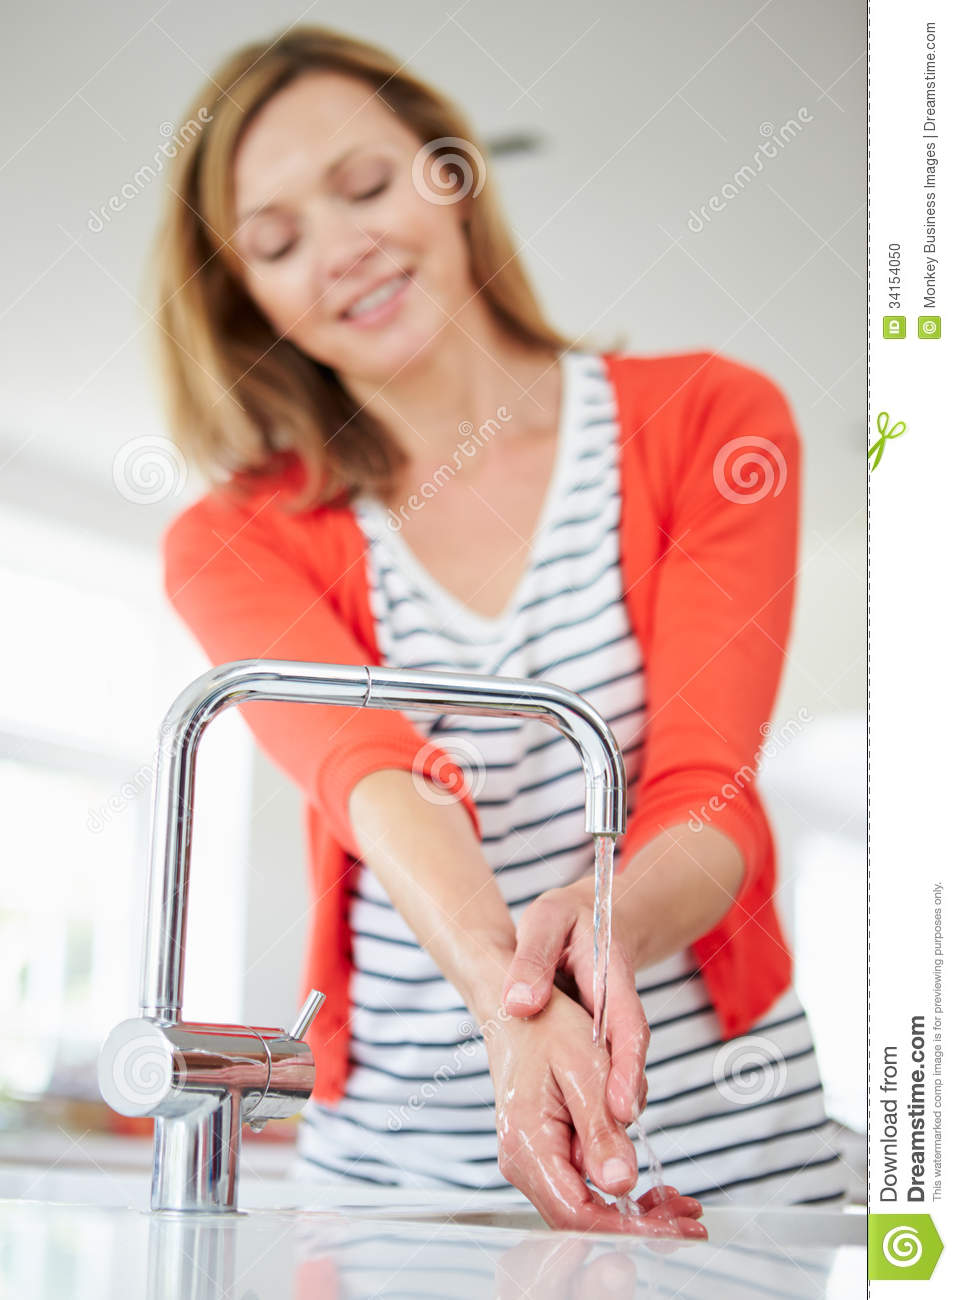 Close Up Of Woman Washing Hands In Kitchen Sink Stock